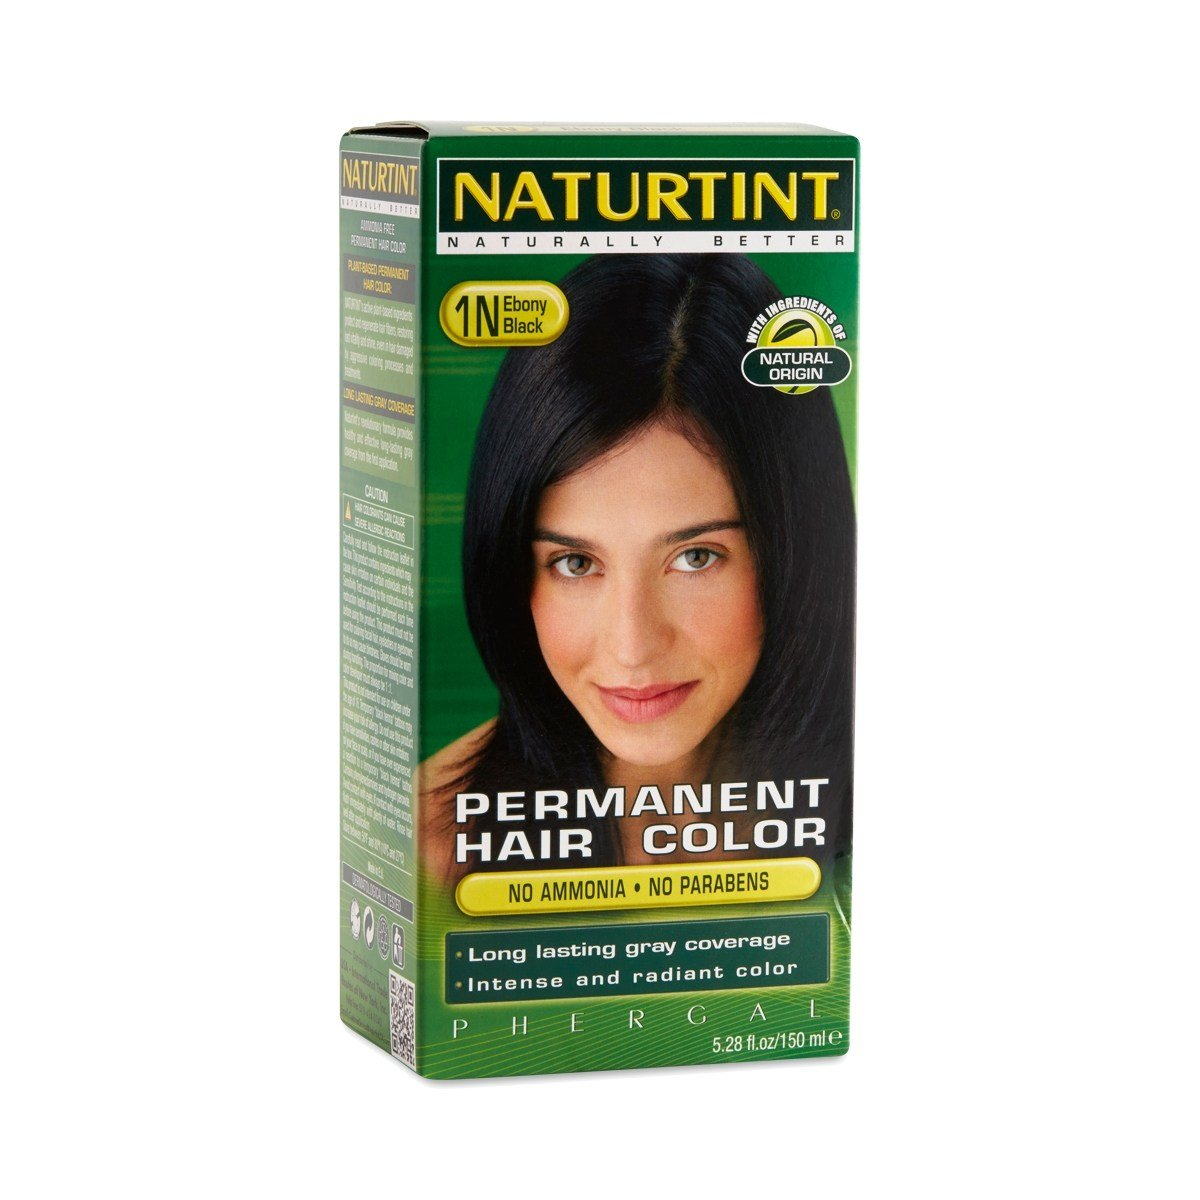 New Ebony Black 1N Permanent Hair Color By Naturtint Thrive Ideas With Pictures